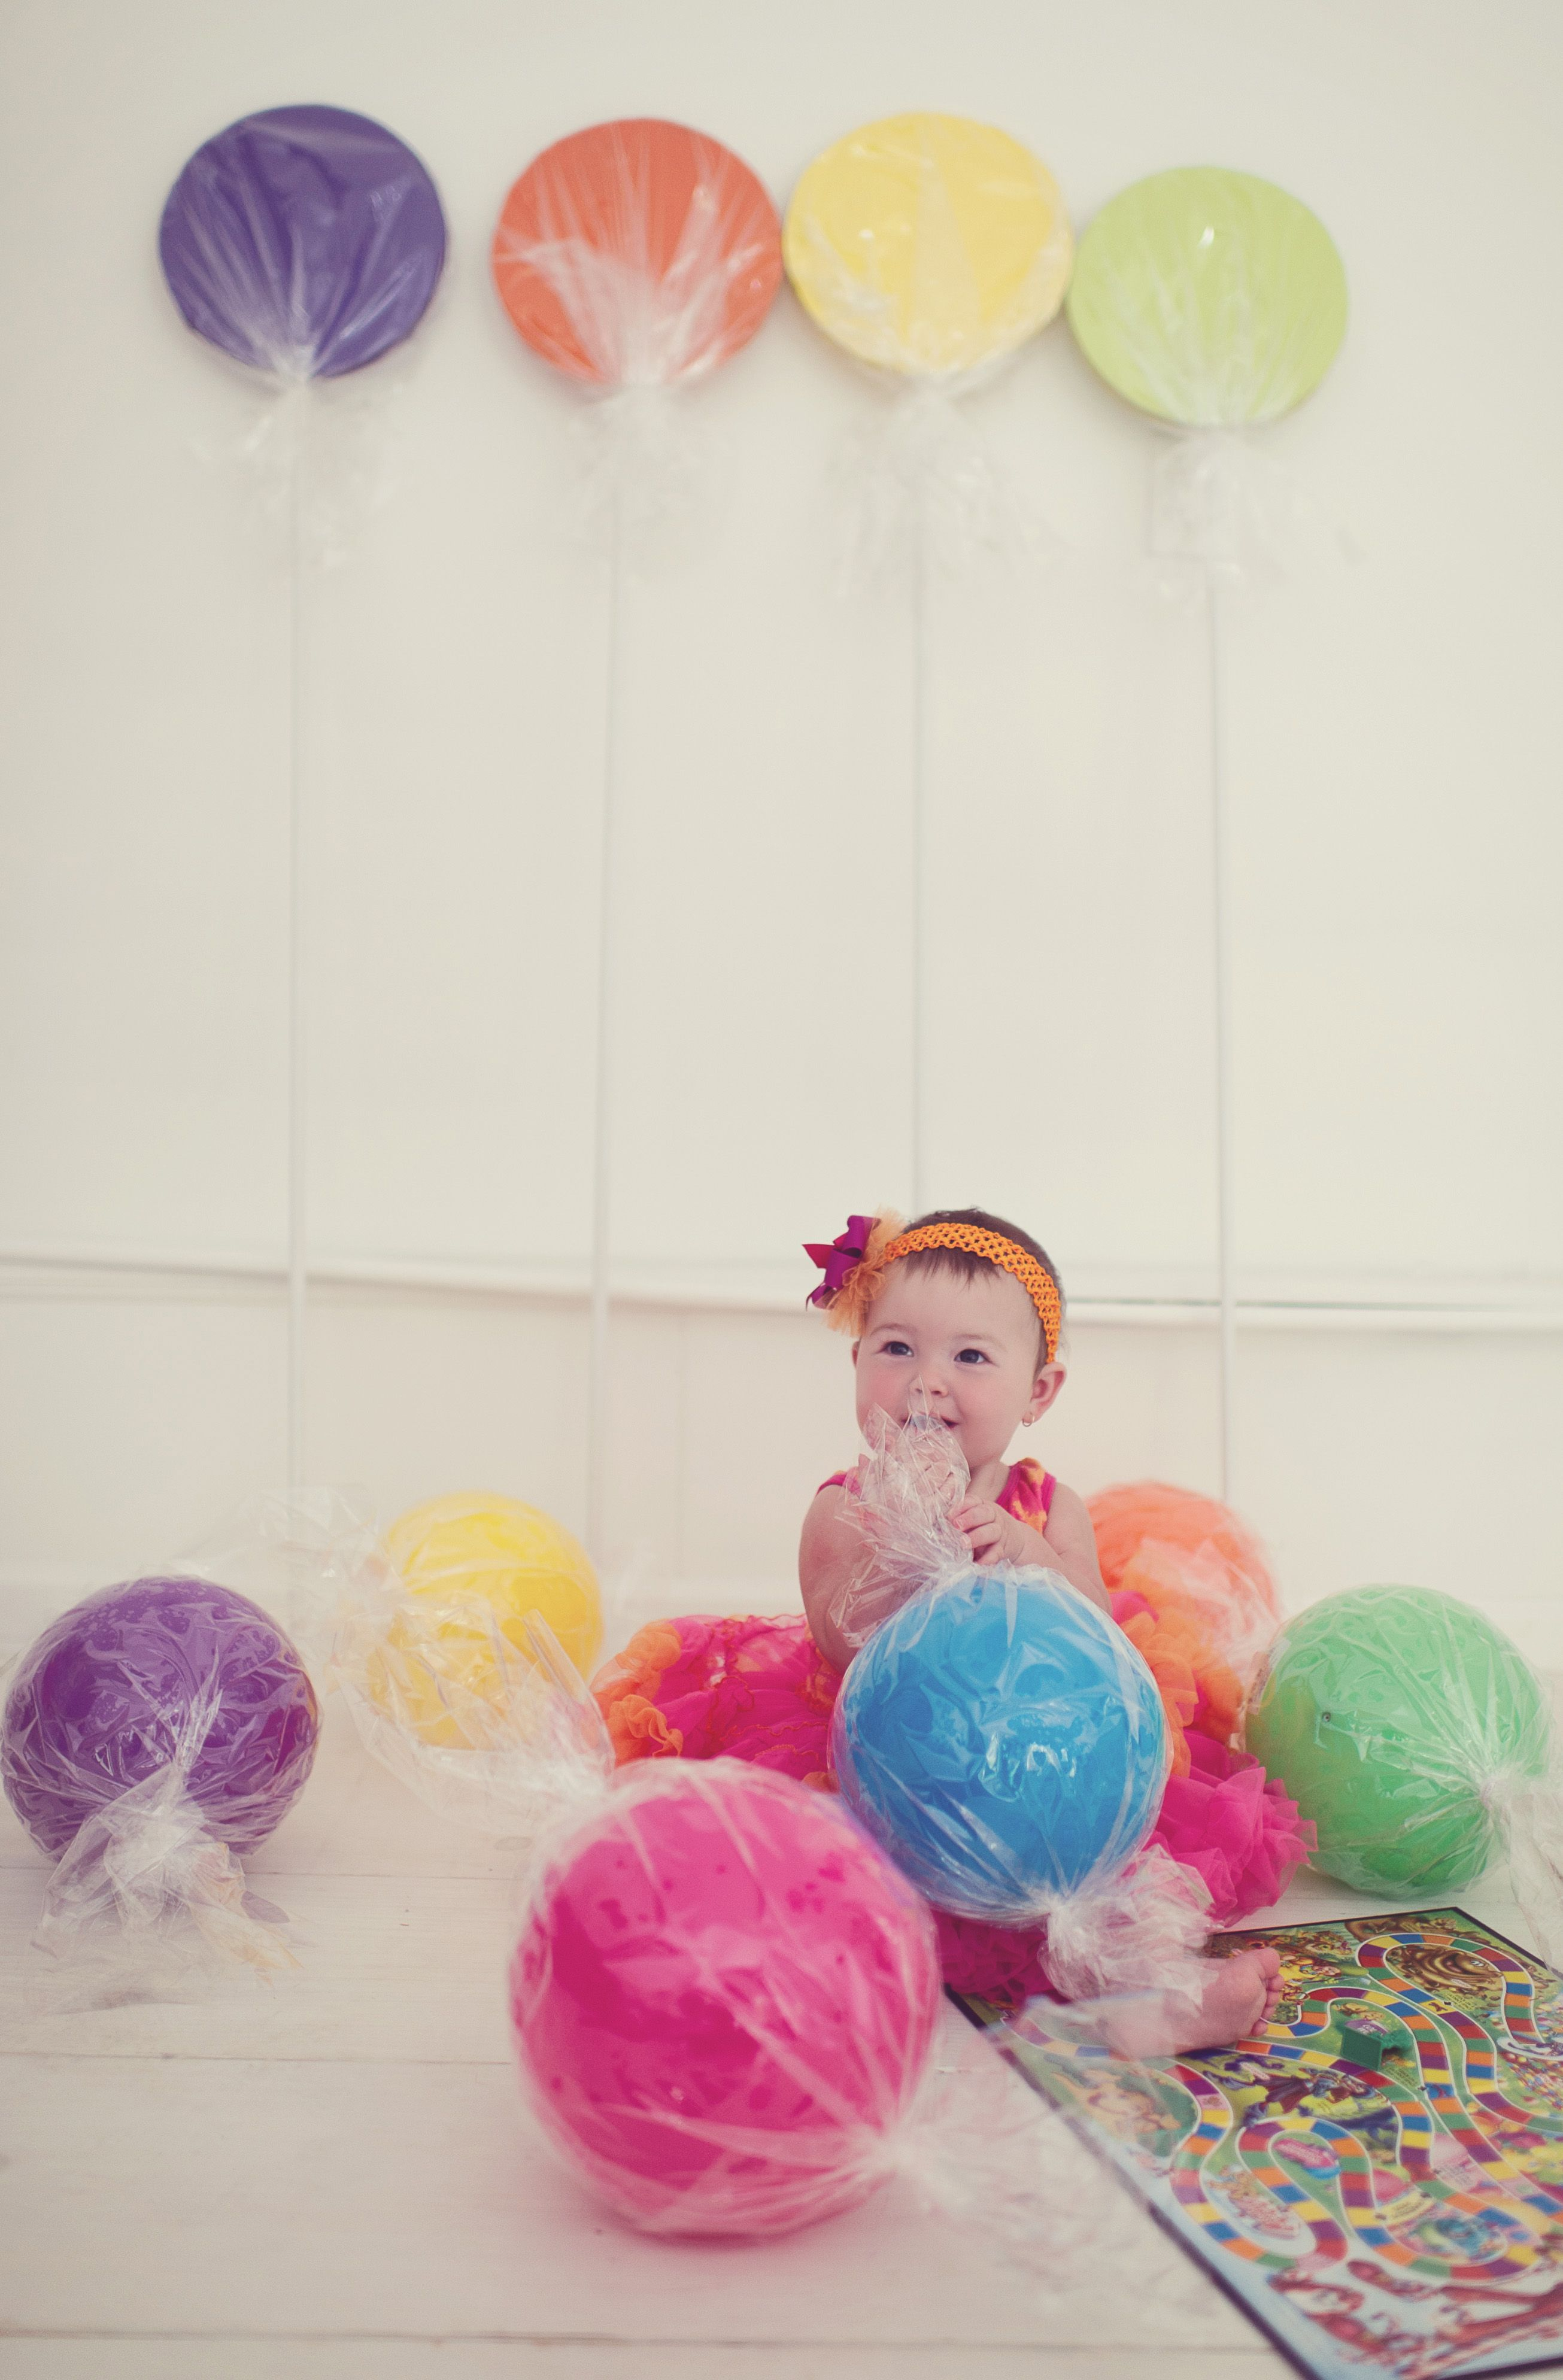 We made the decorations in advance to be used in the photo shoot for ...